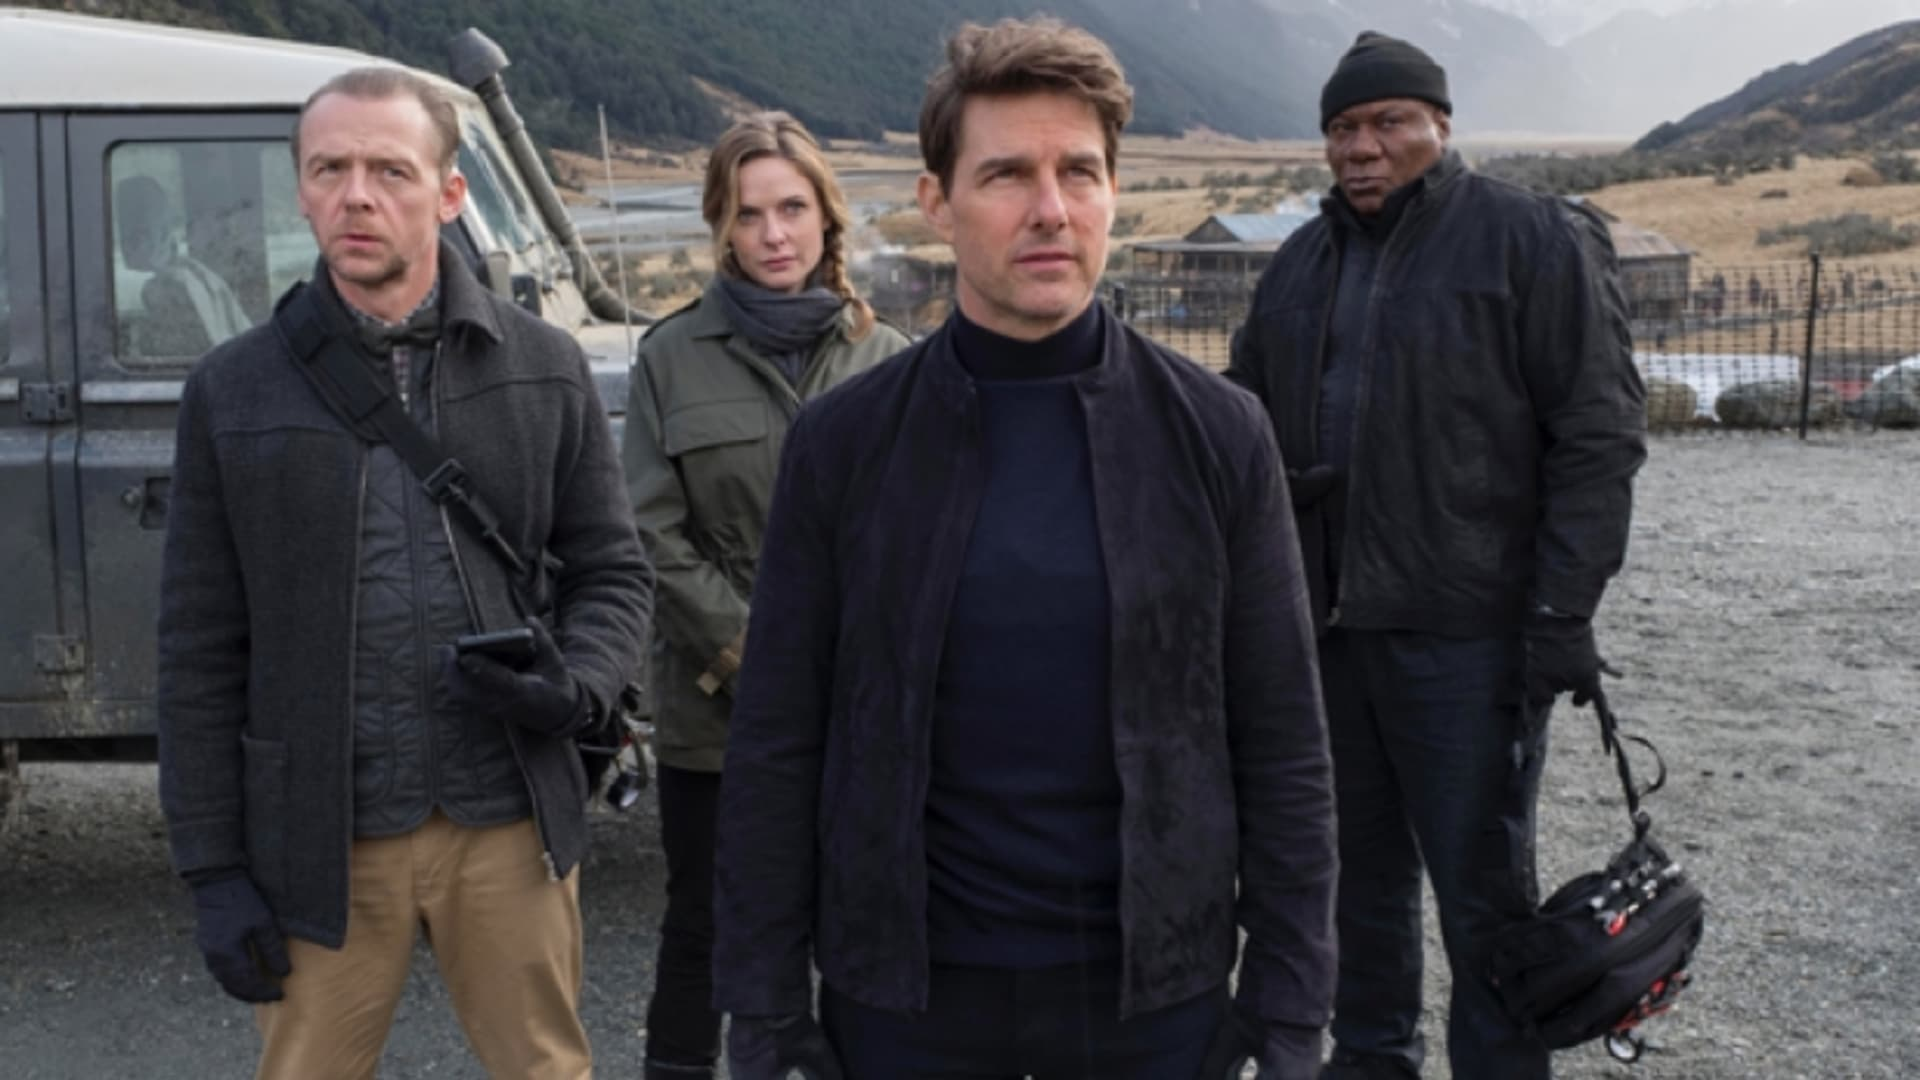 'Mission: Impossible 6'